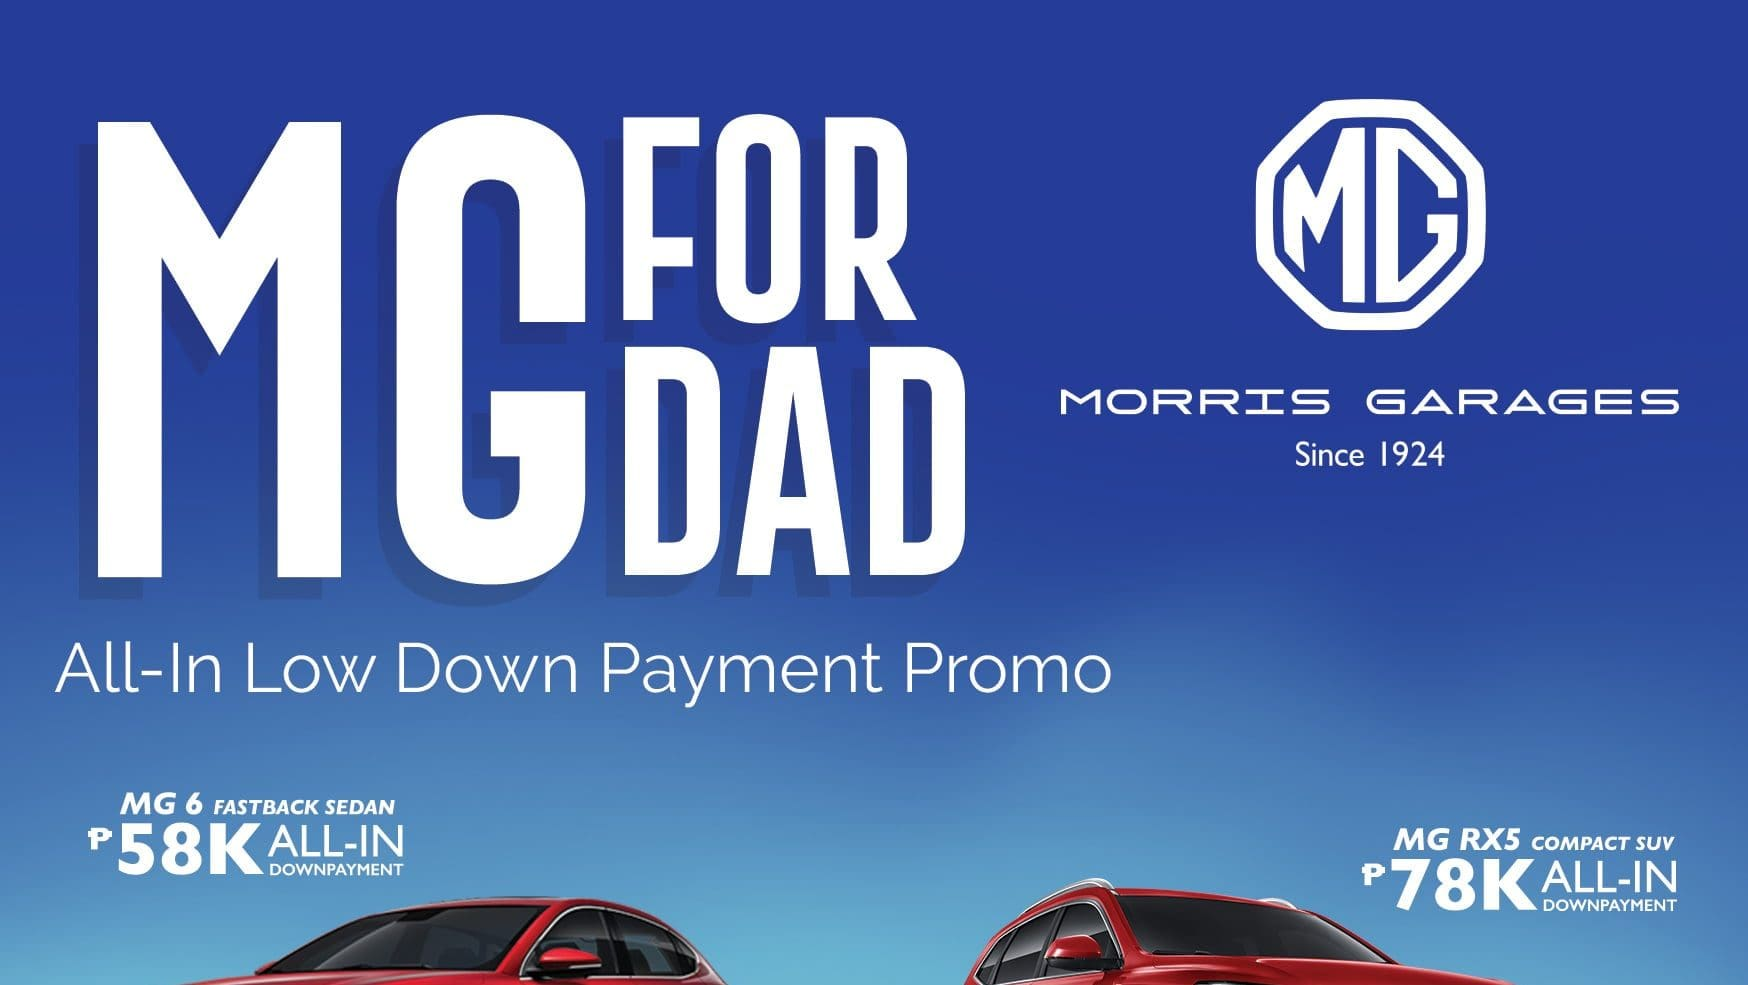 MG PH Celebrates Father's Day with 'MG for Dad' All-In Low Downpayment Promo